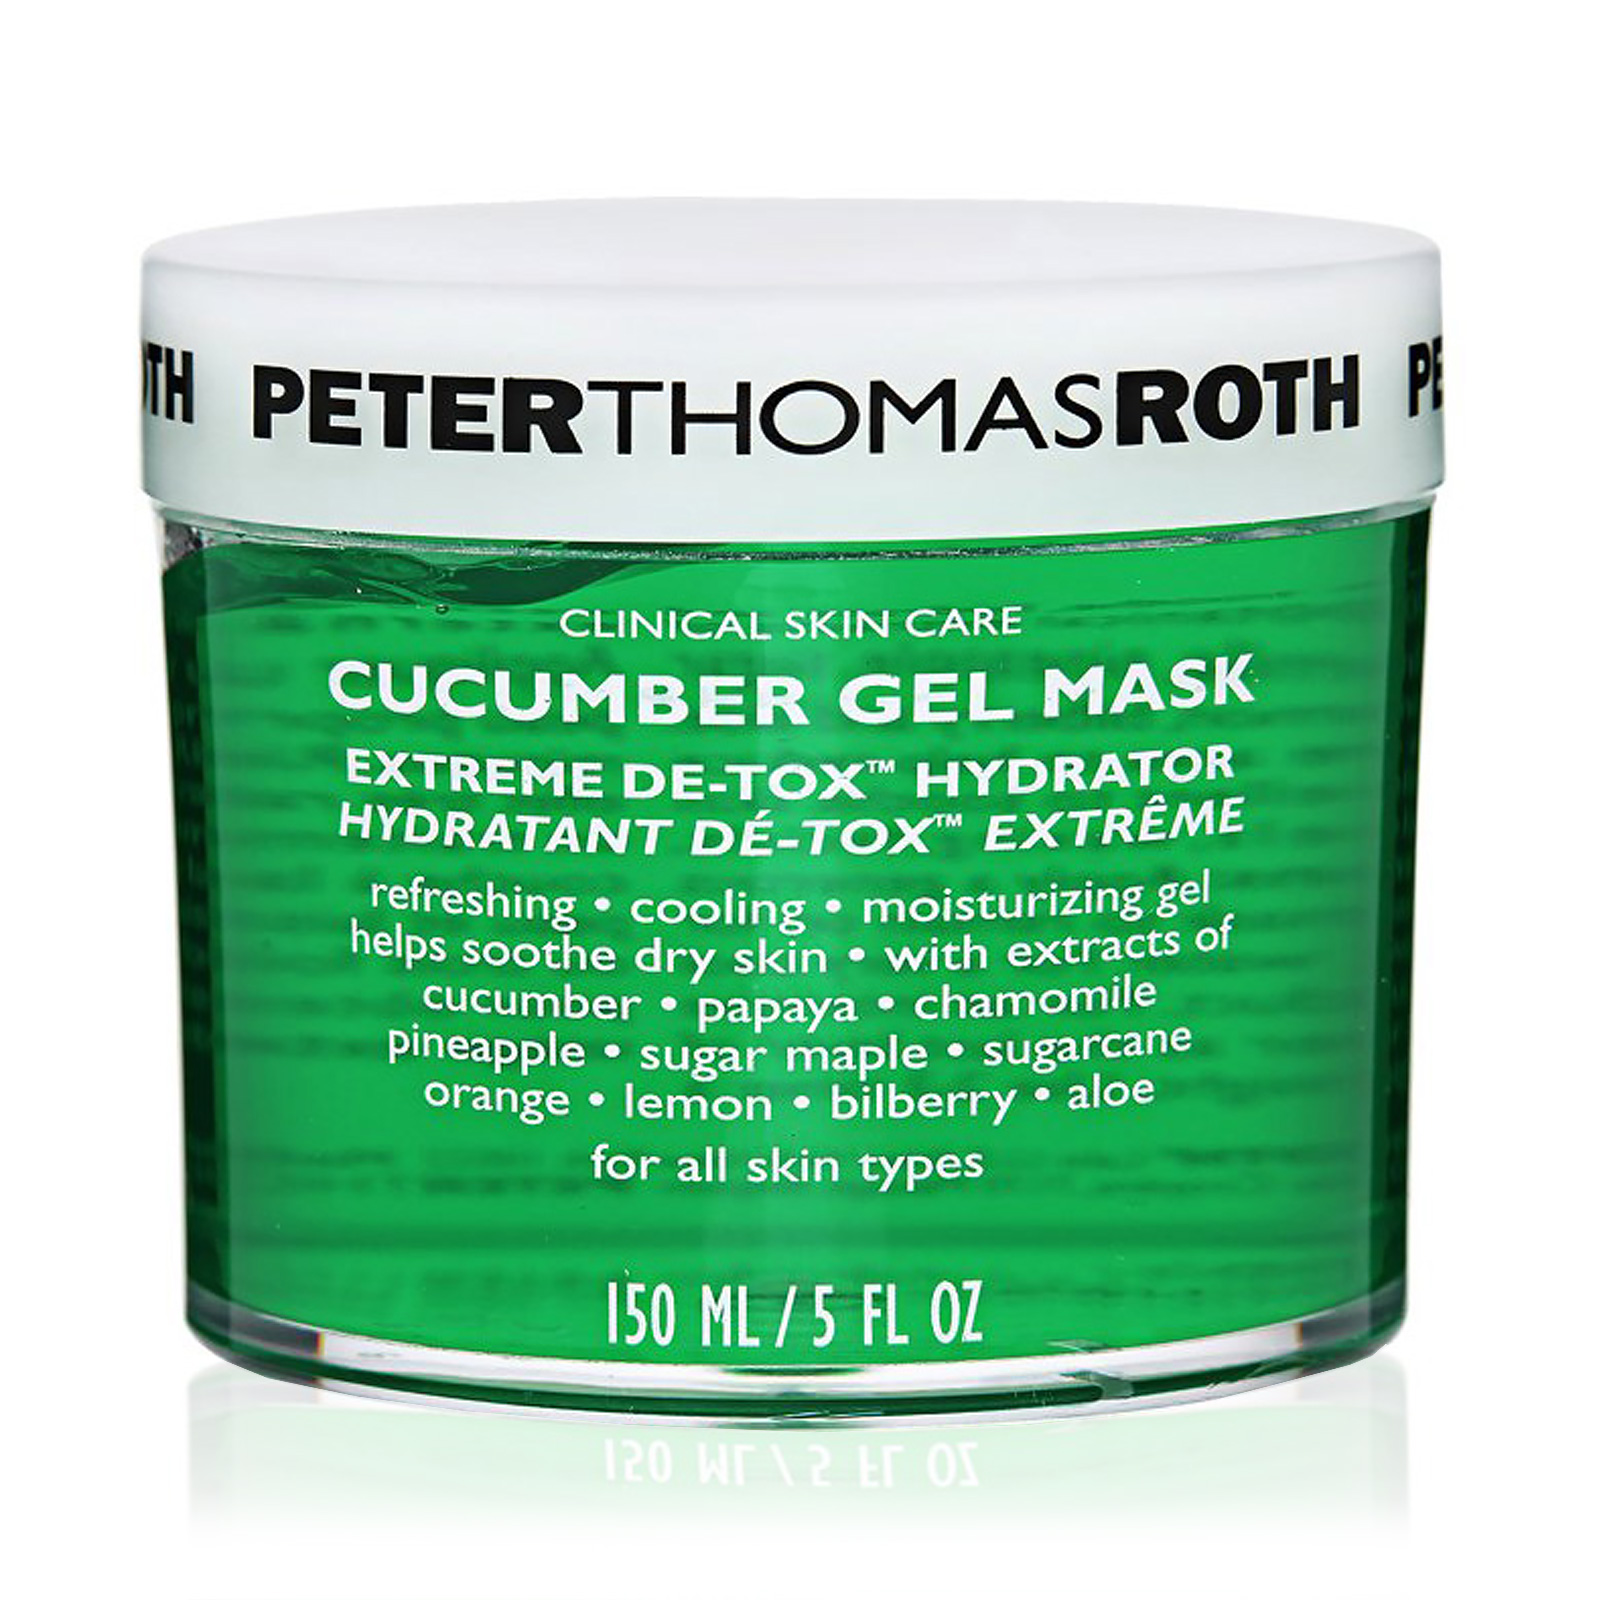 Cucumber Extreme De-Tox Gel Mask Hydrator (For All Skin Types)